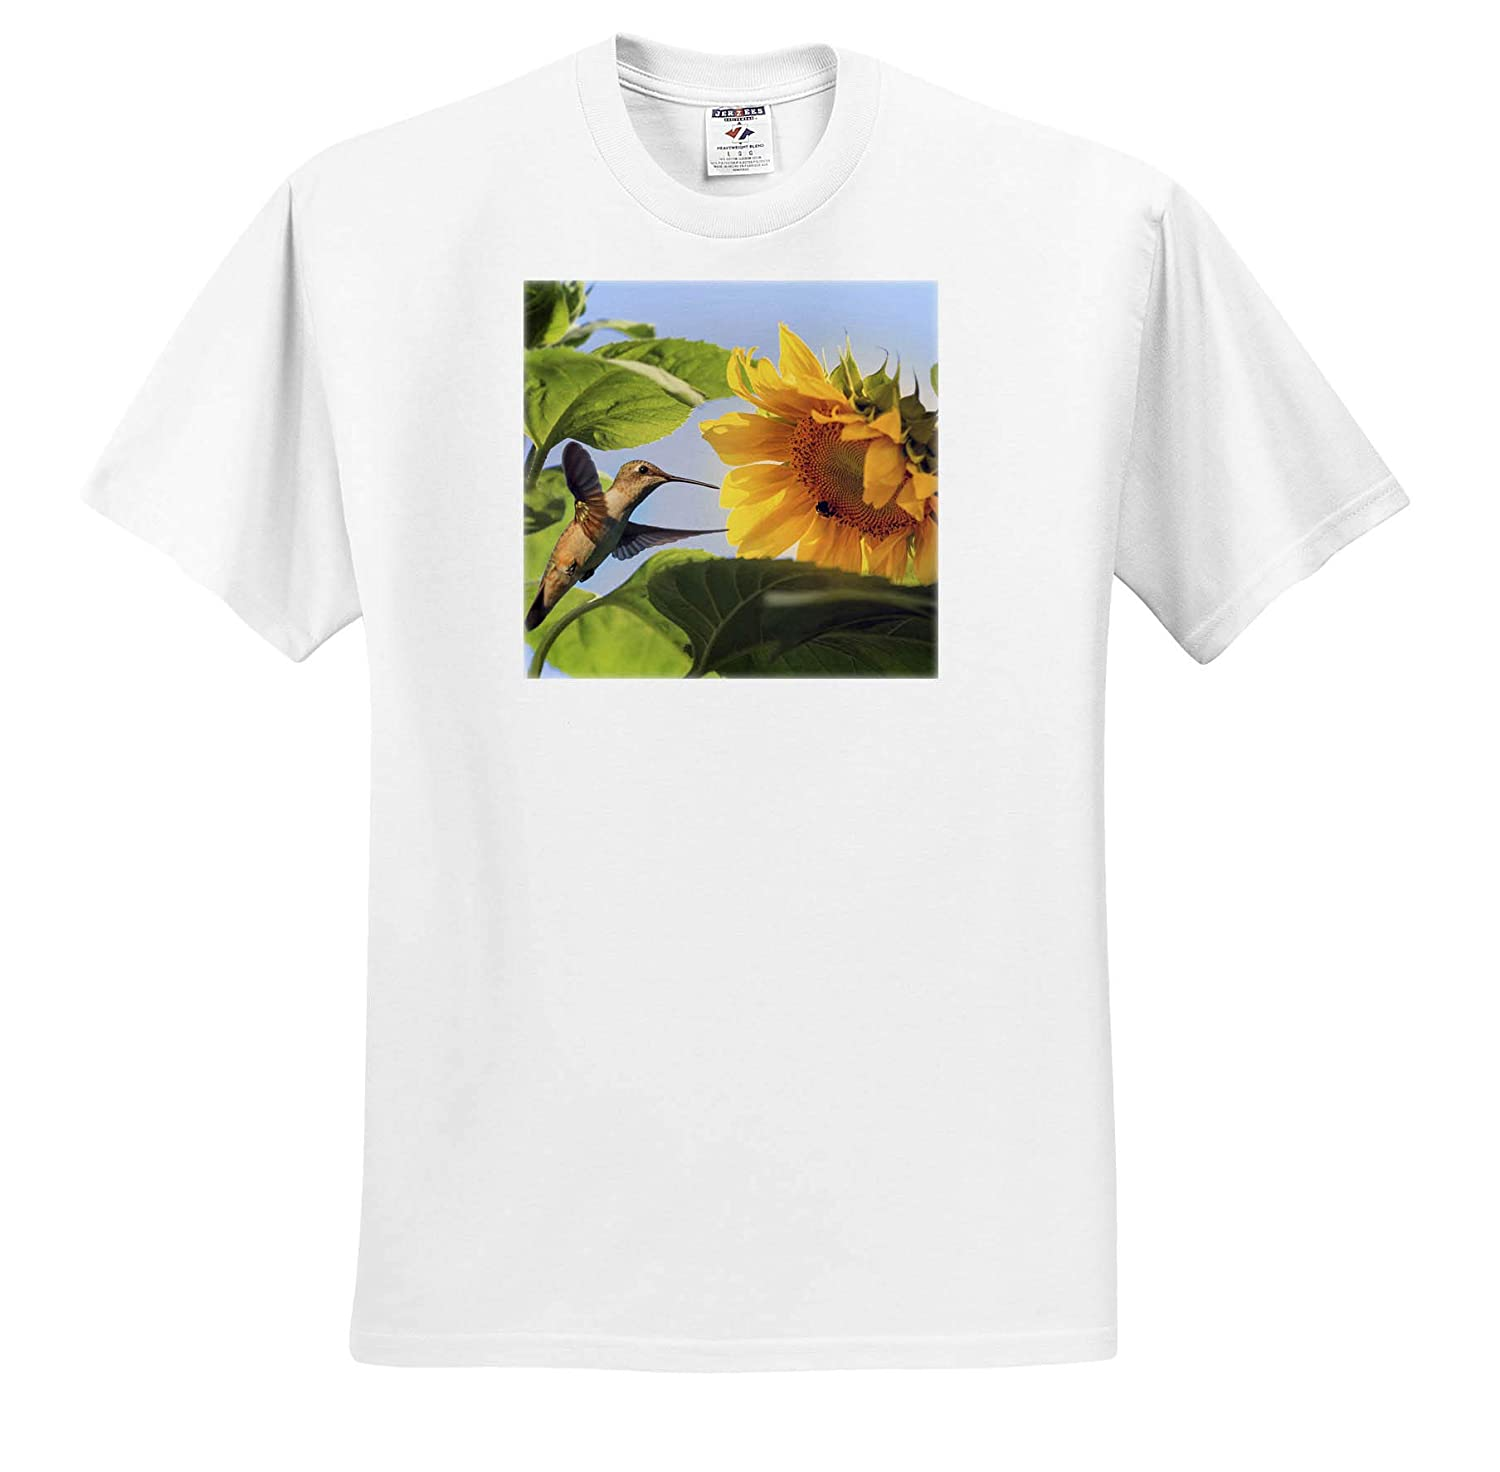 - T-Shirts A Ruby-Throated Hummingbird and Carpenter bee Enjoying a Sunflower 3dRose Stamp City Nature